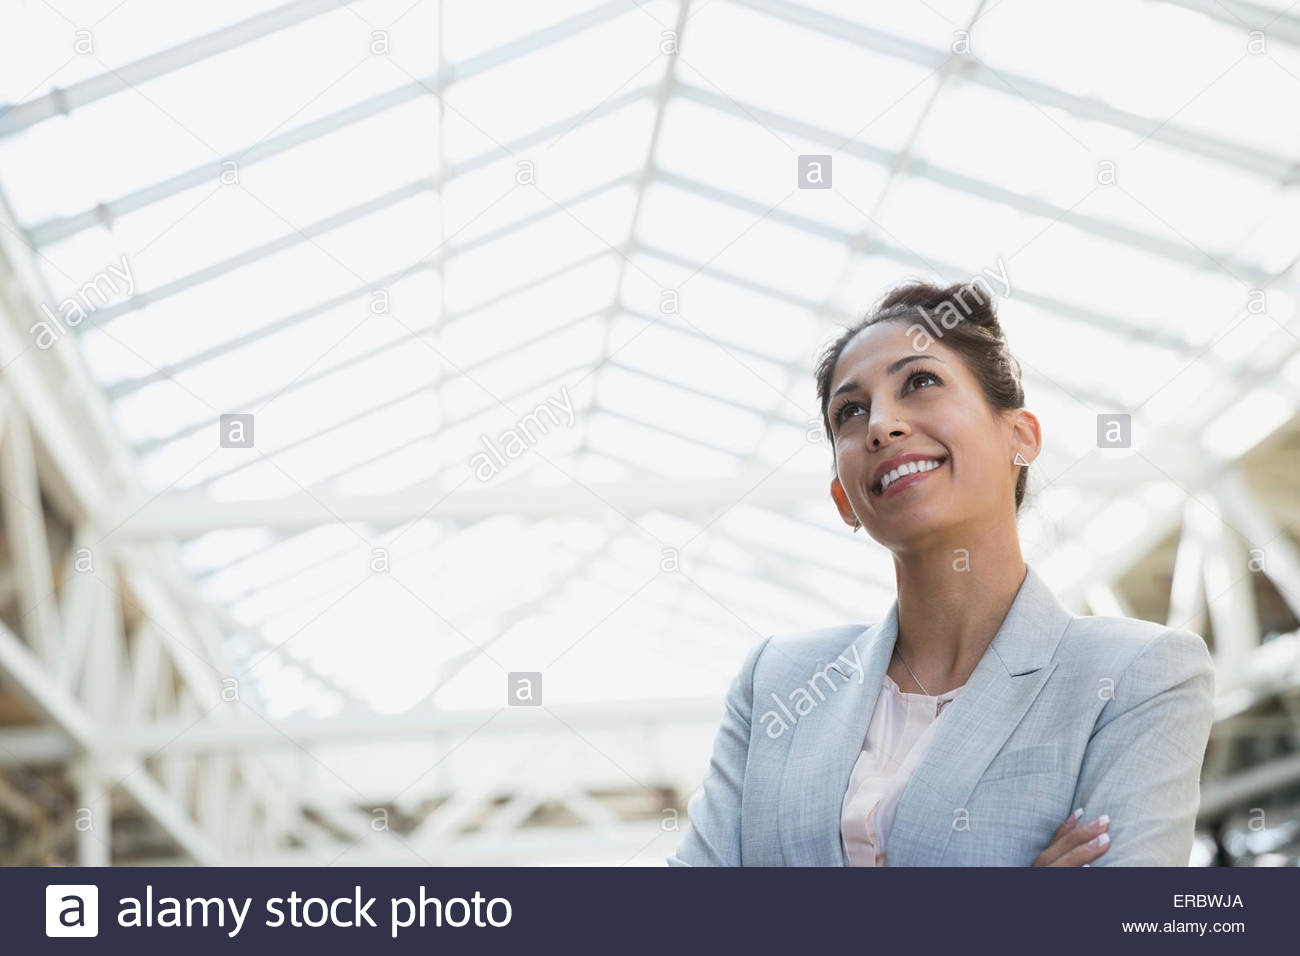 Portrait of smiling woman looking up in atrium - Stock Image